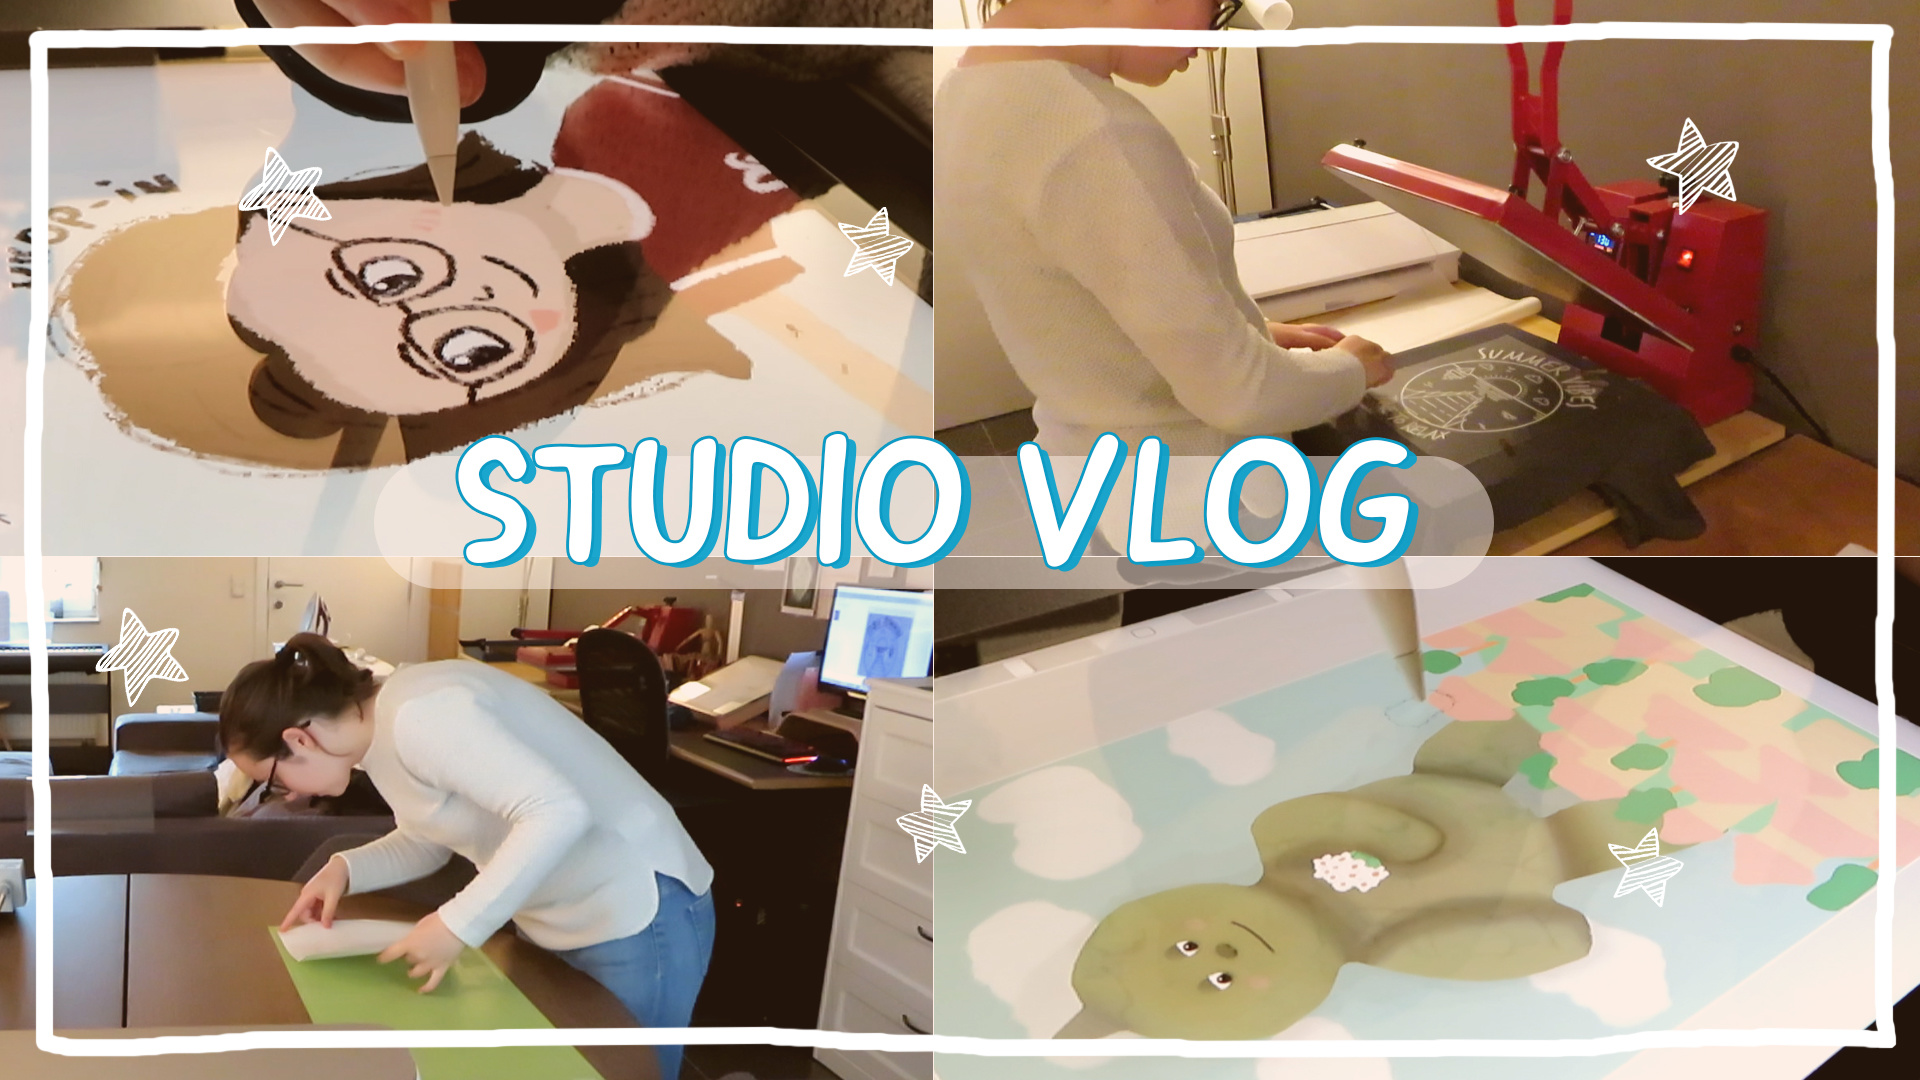 STUDIO VLOG 9 | Pressing T-shirts - Thinking about an art community - Life of a shop owner